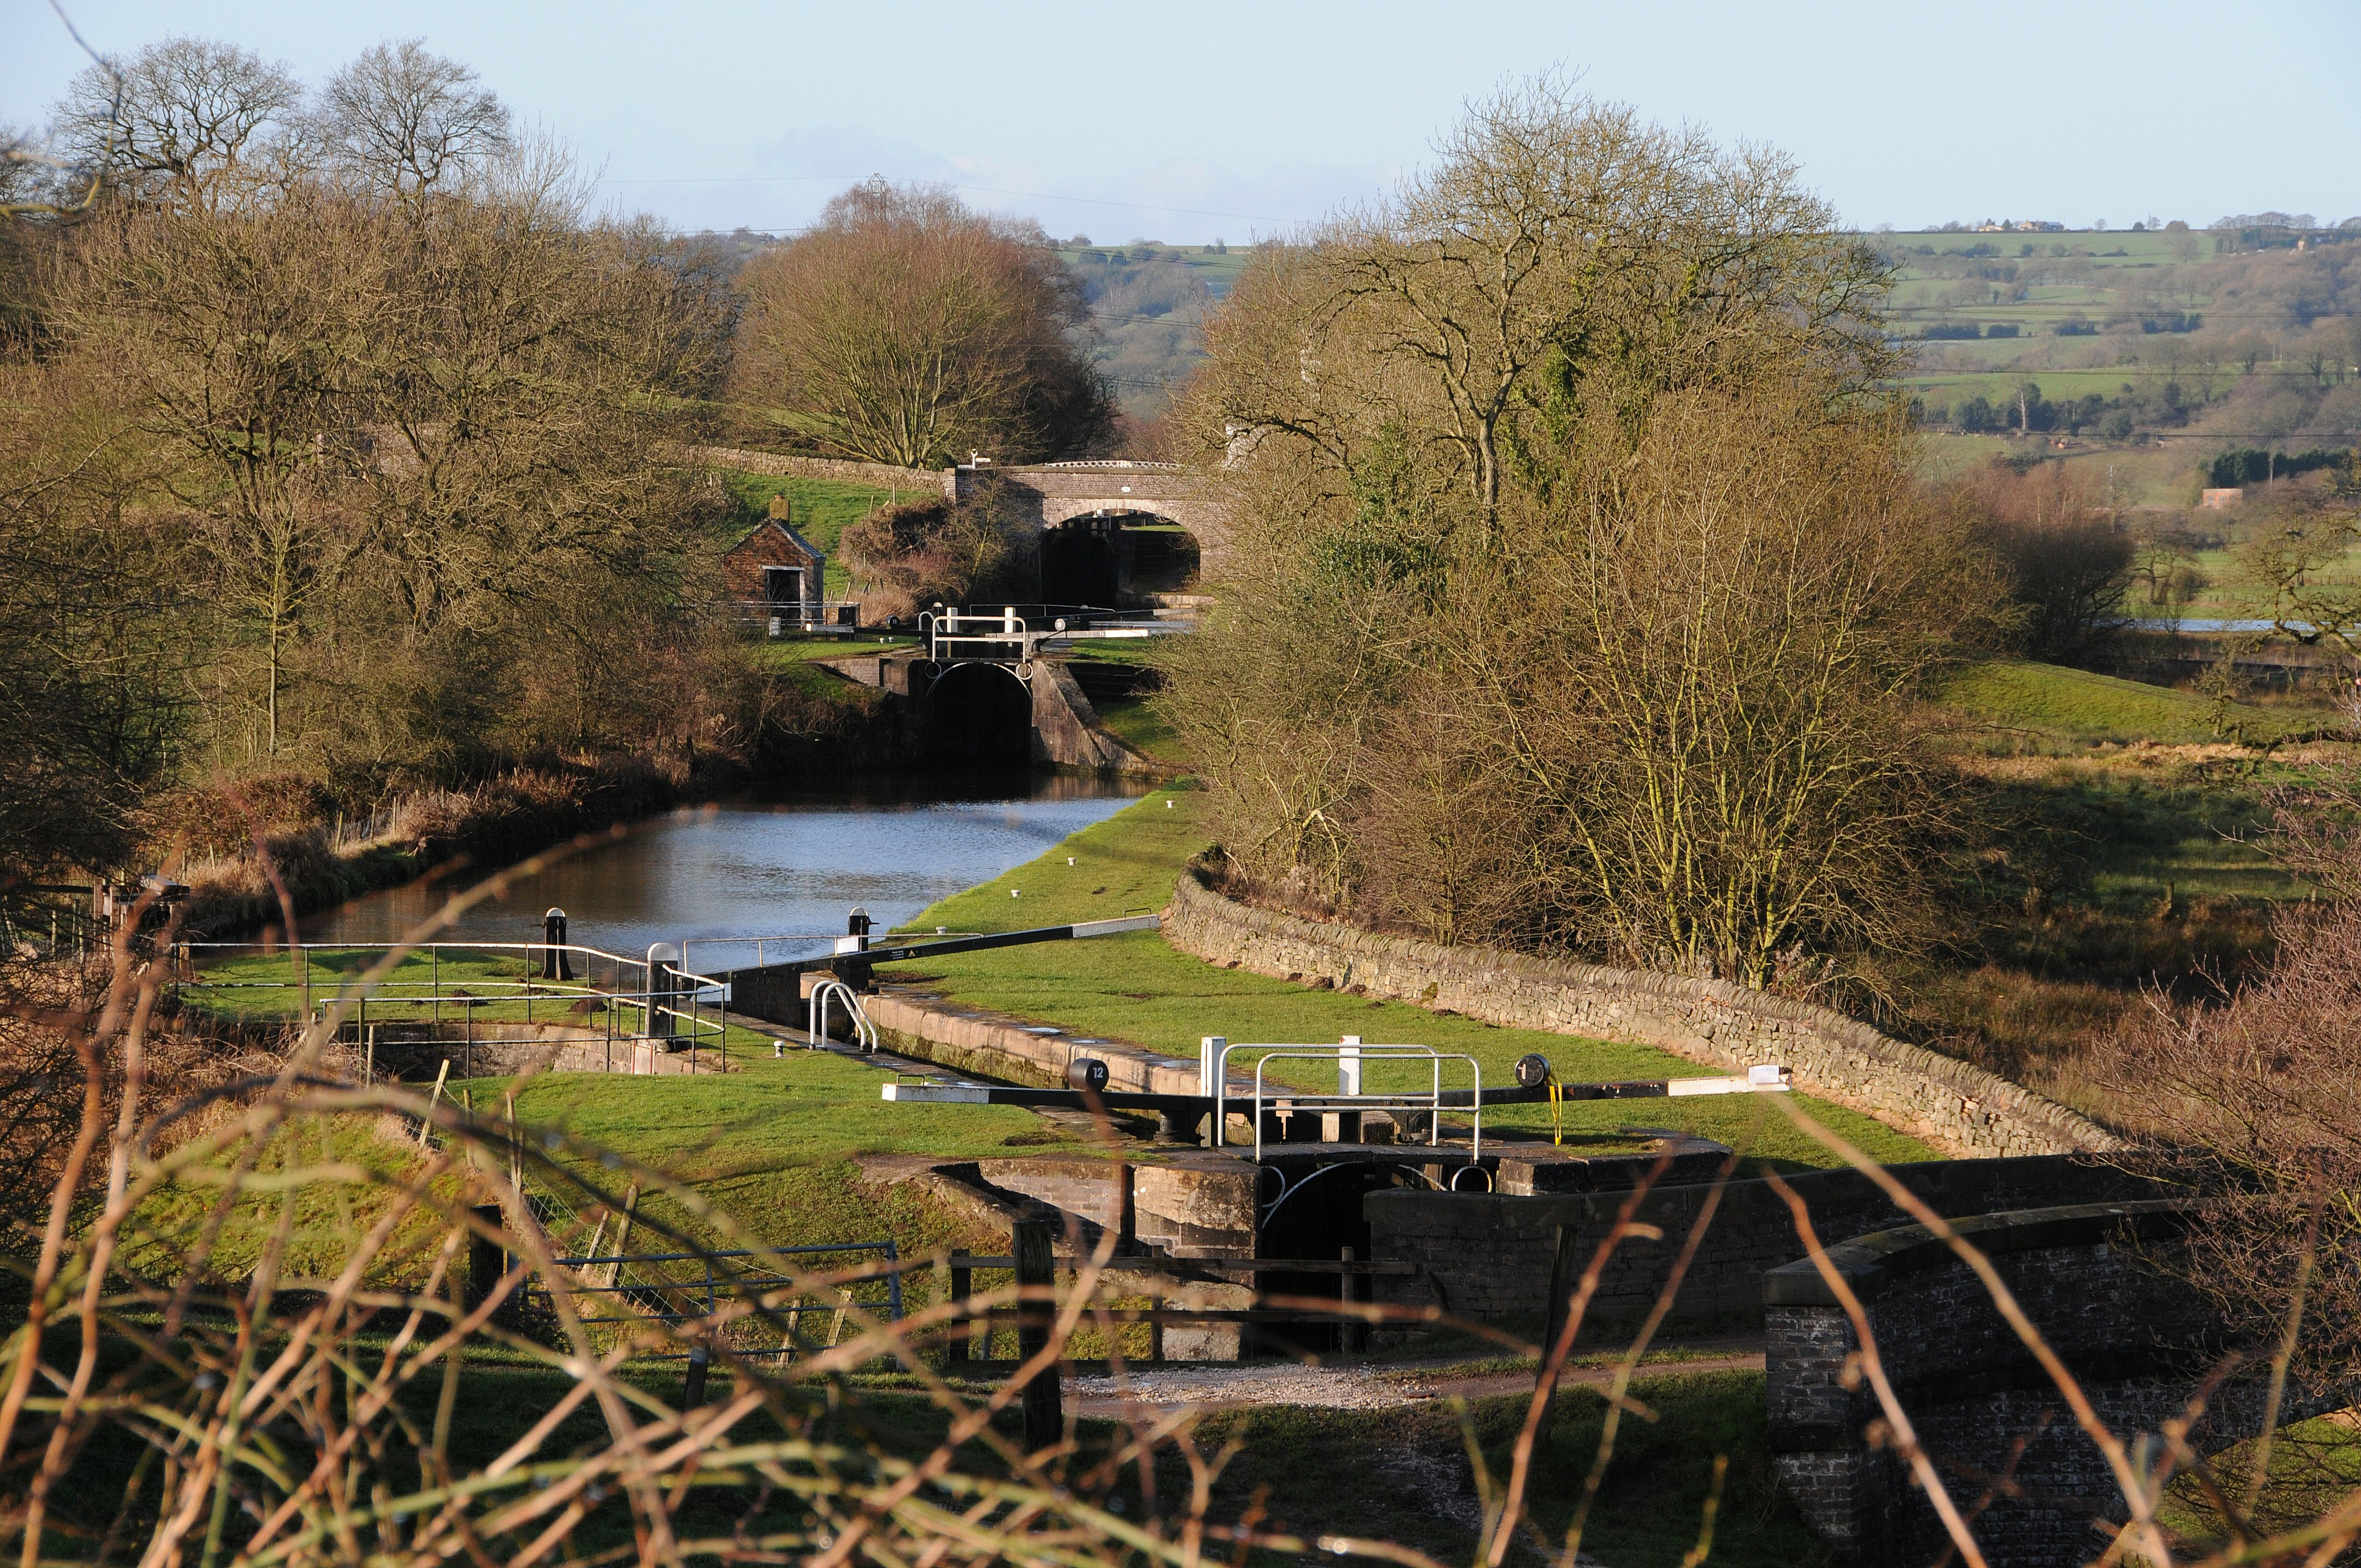 Hazlehurst Locks - Harry Arnold / Waterway Images